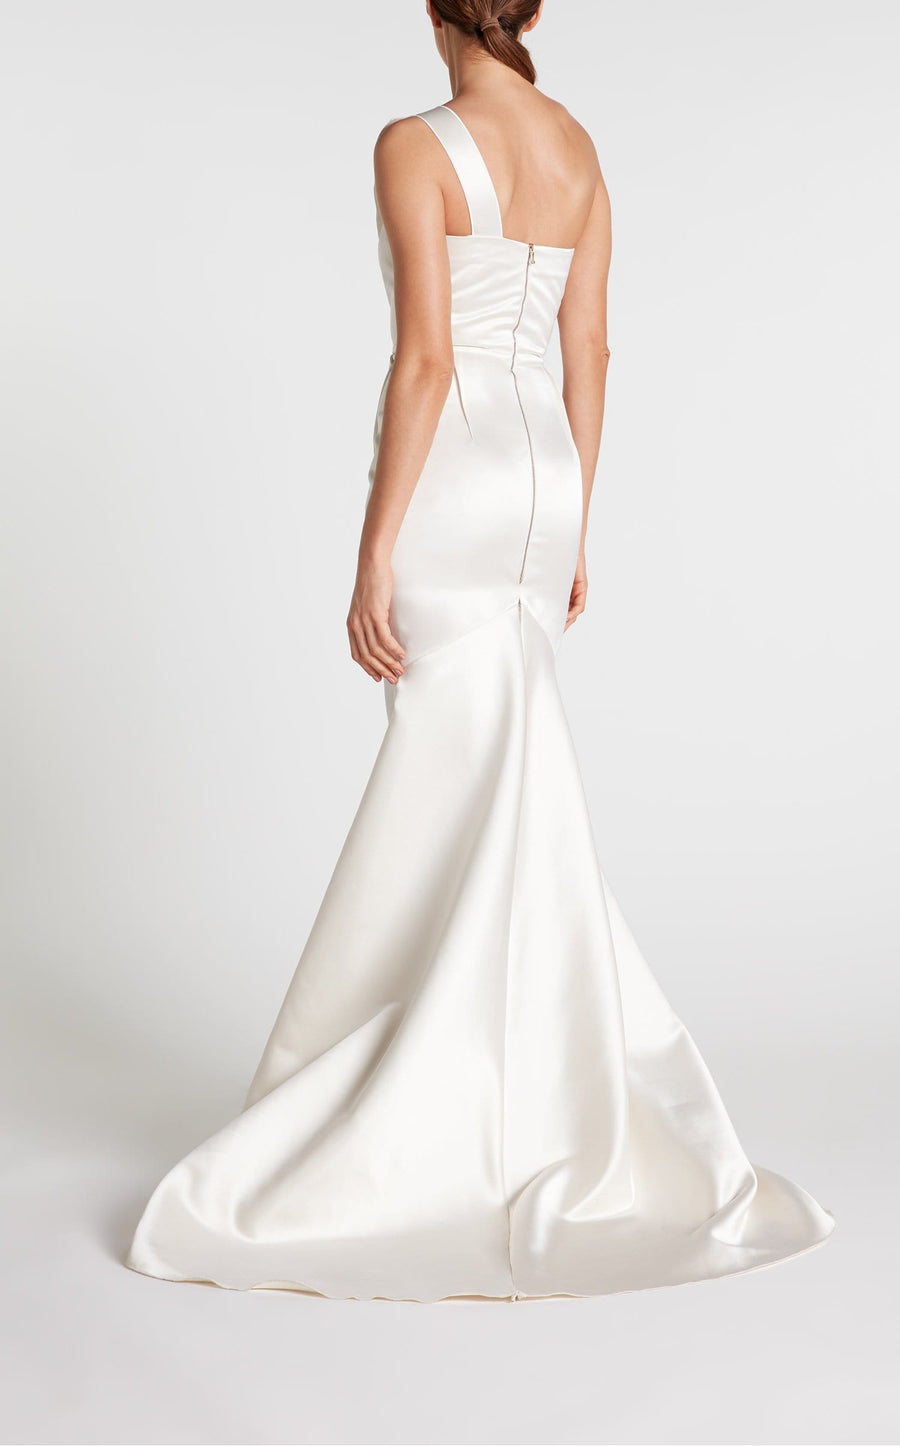 Giorgia Gown In White from Roland Mouret